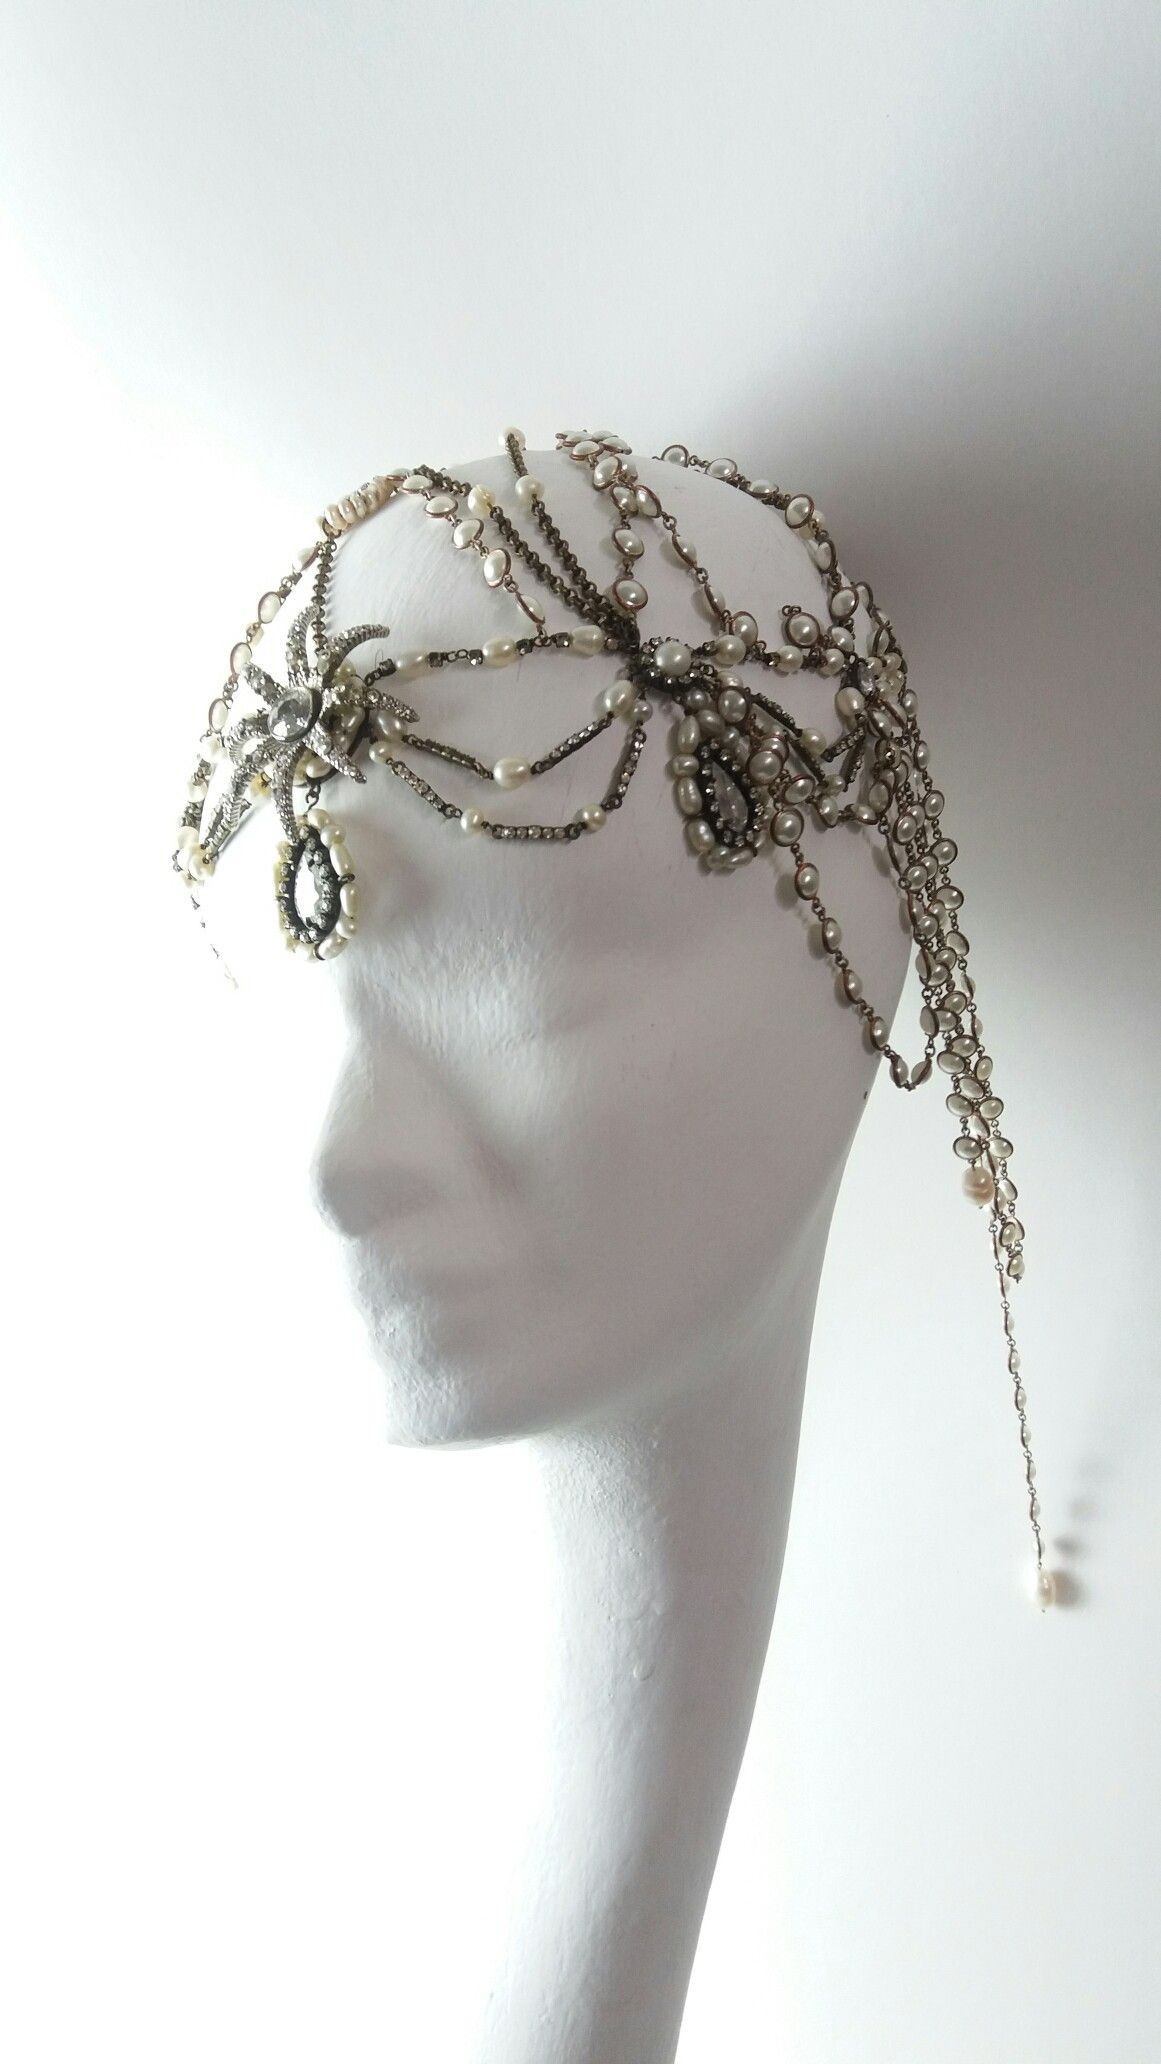 A Pearls Headpiece Belle Epoque Romantic Odalisk Wedding Bride Inspiration Star Headpiece by Marco Apollonio